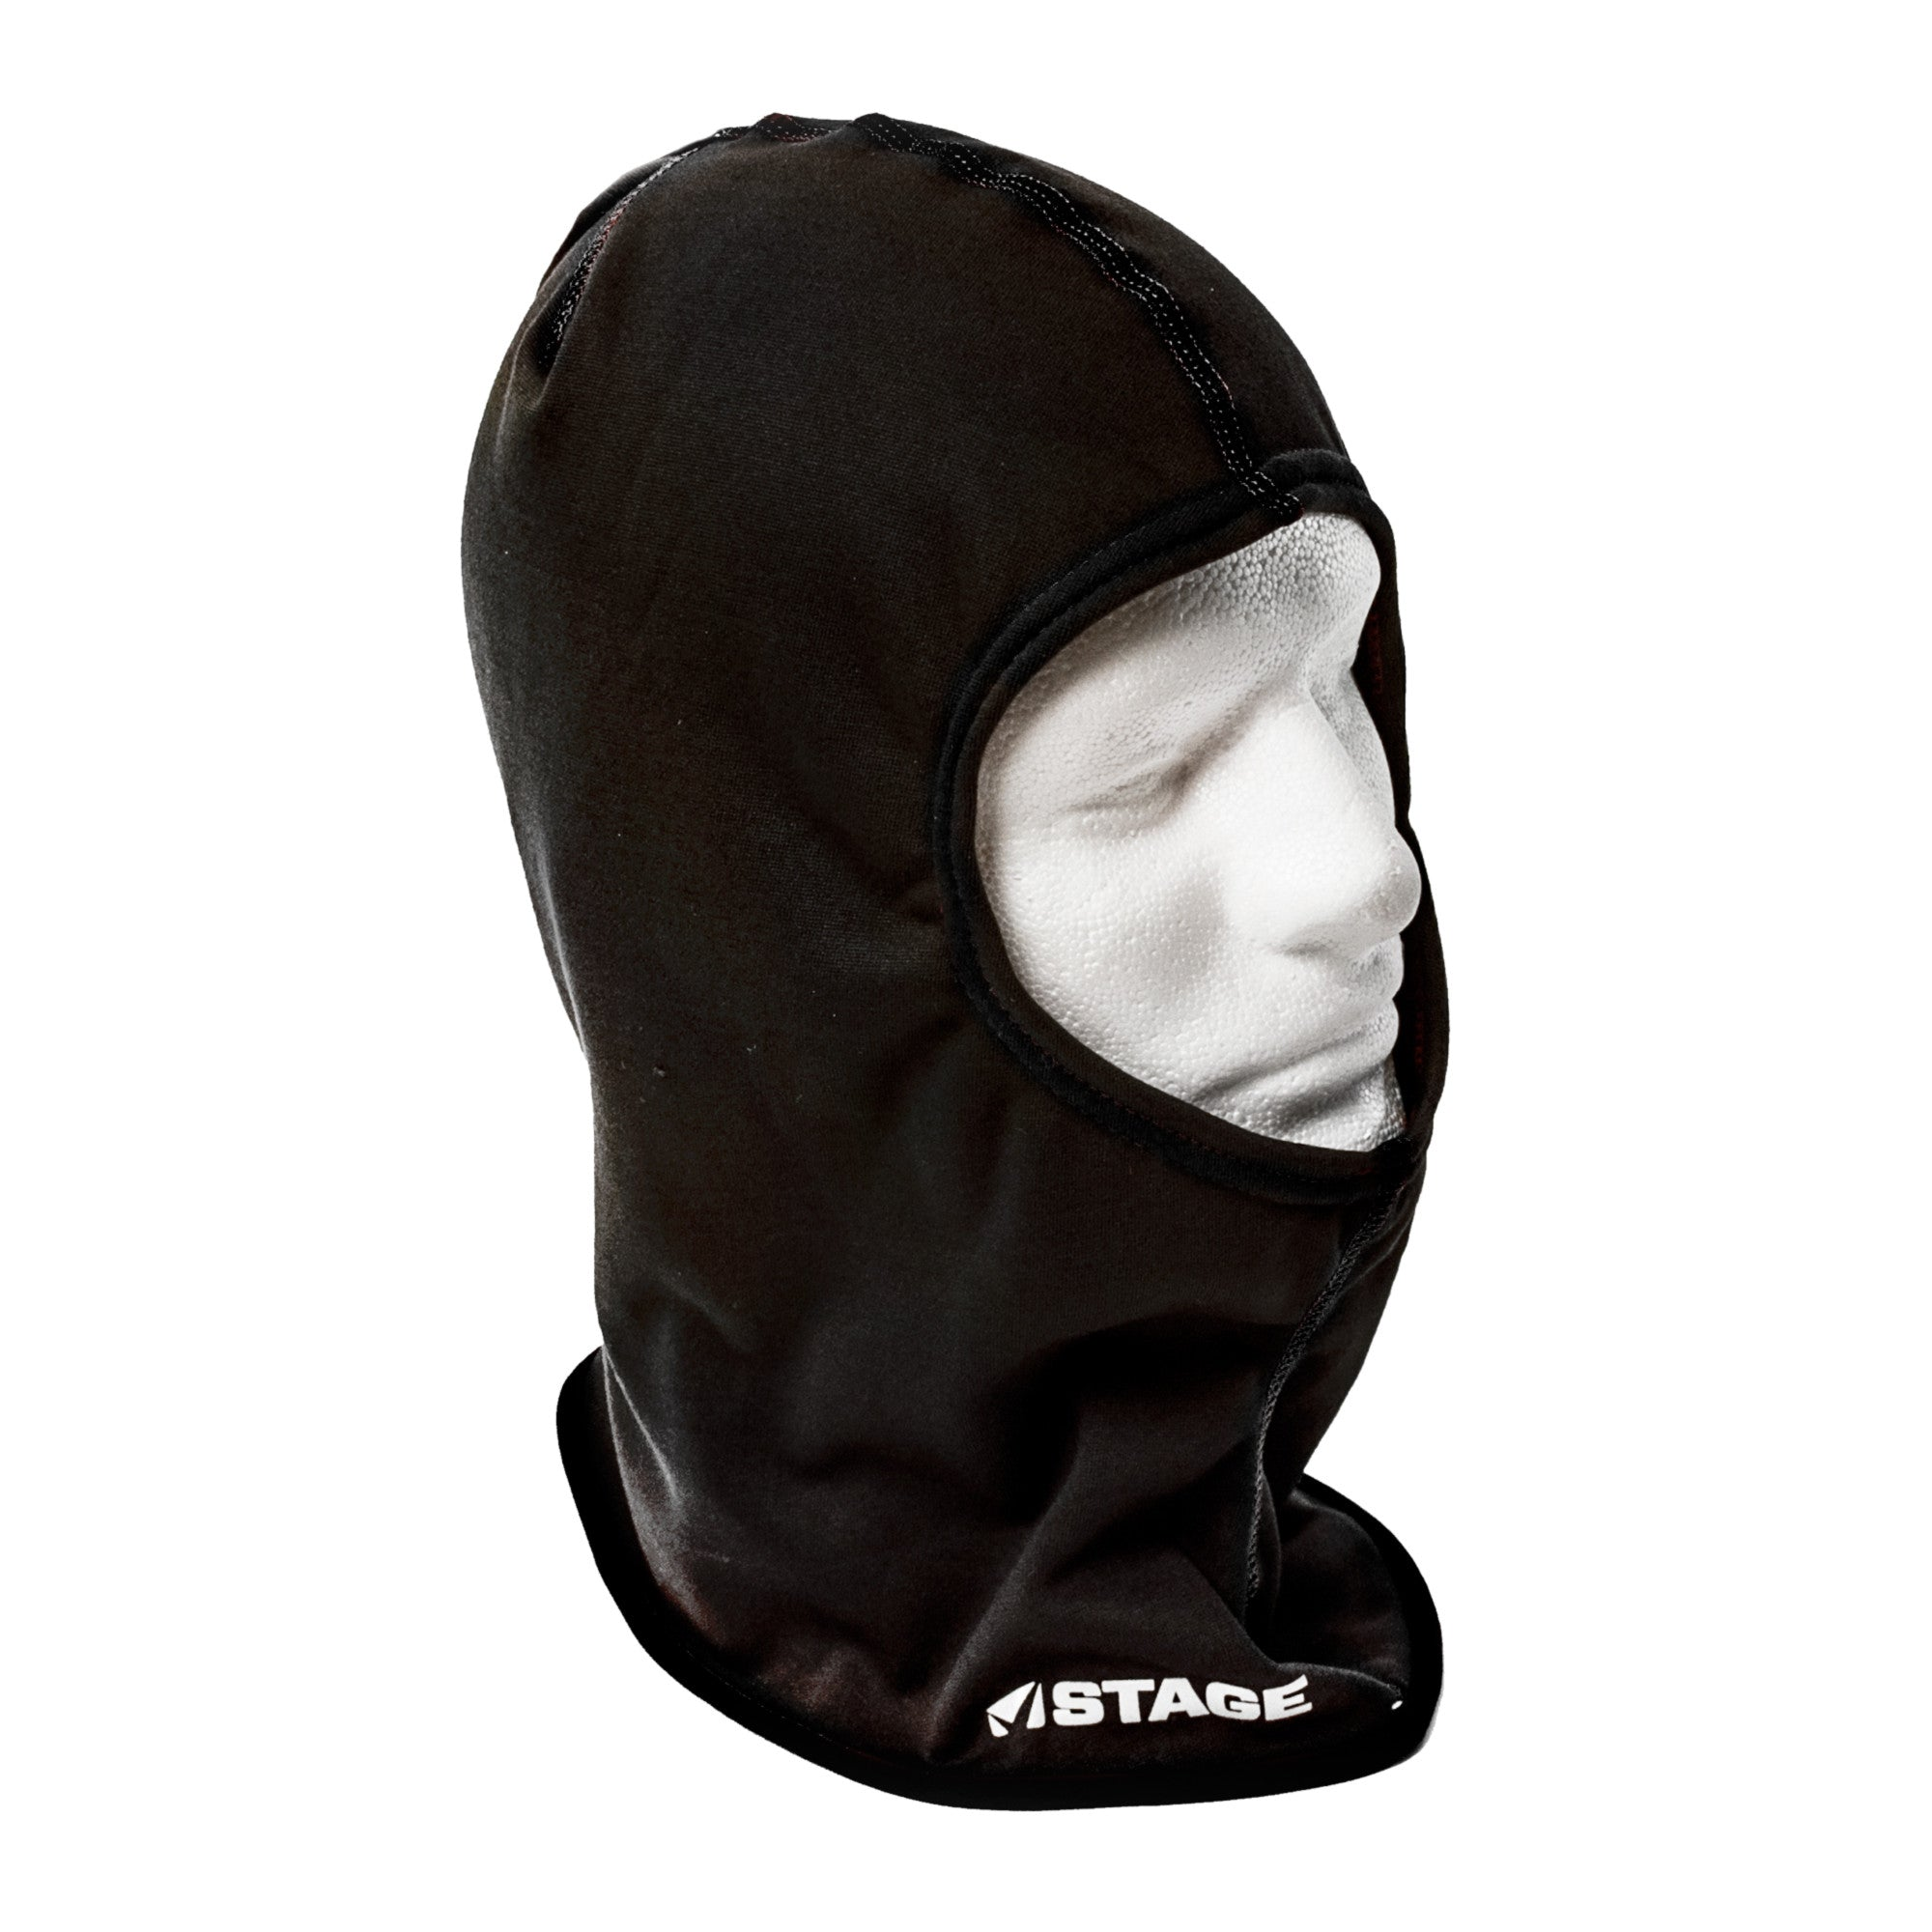 Stage Balaclava - Black